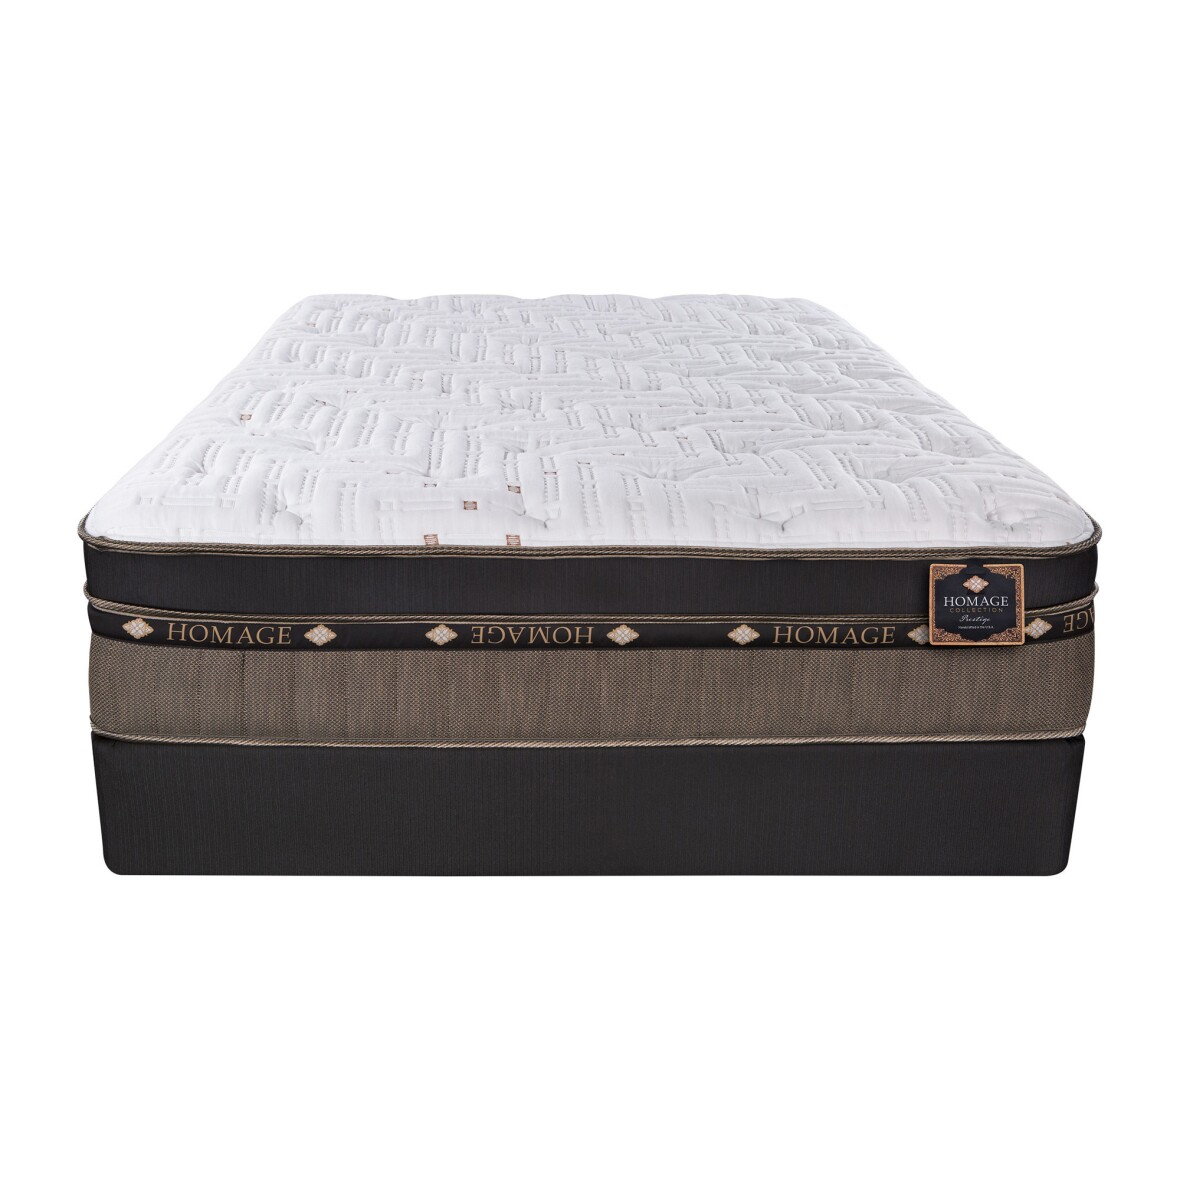 133438_Homage_Excellence Boxtop Mattress (3).jpg